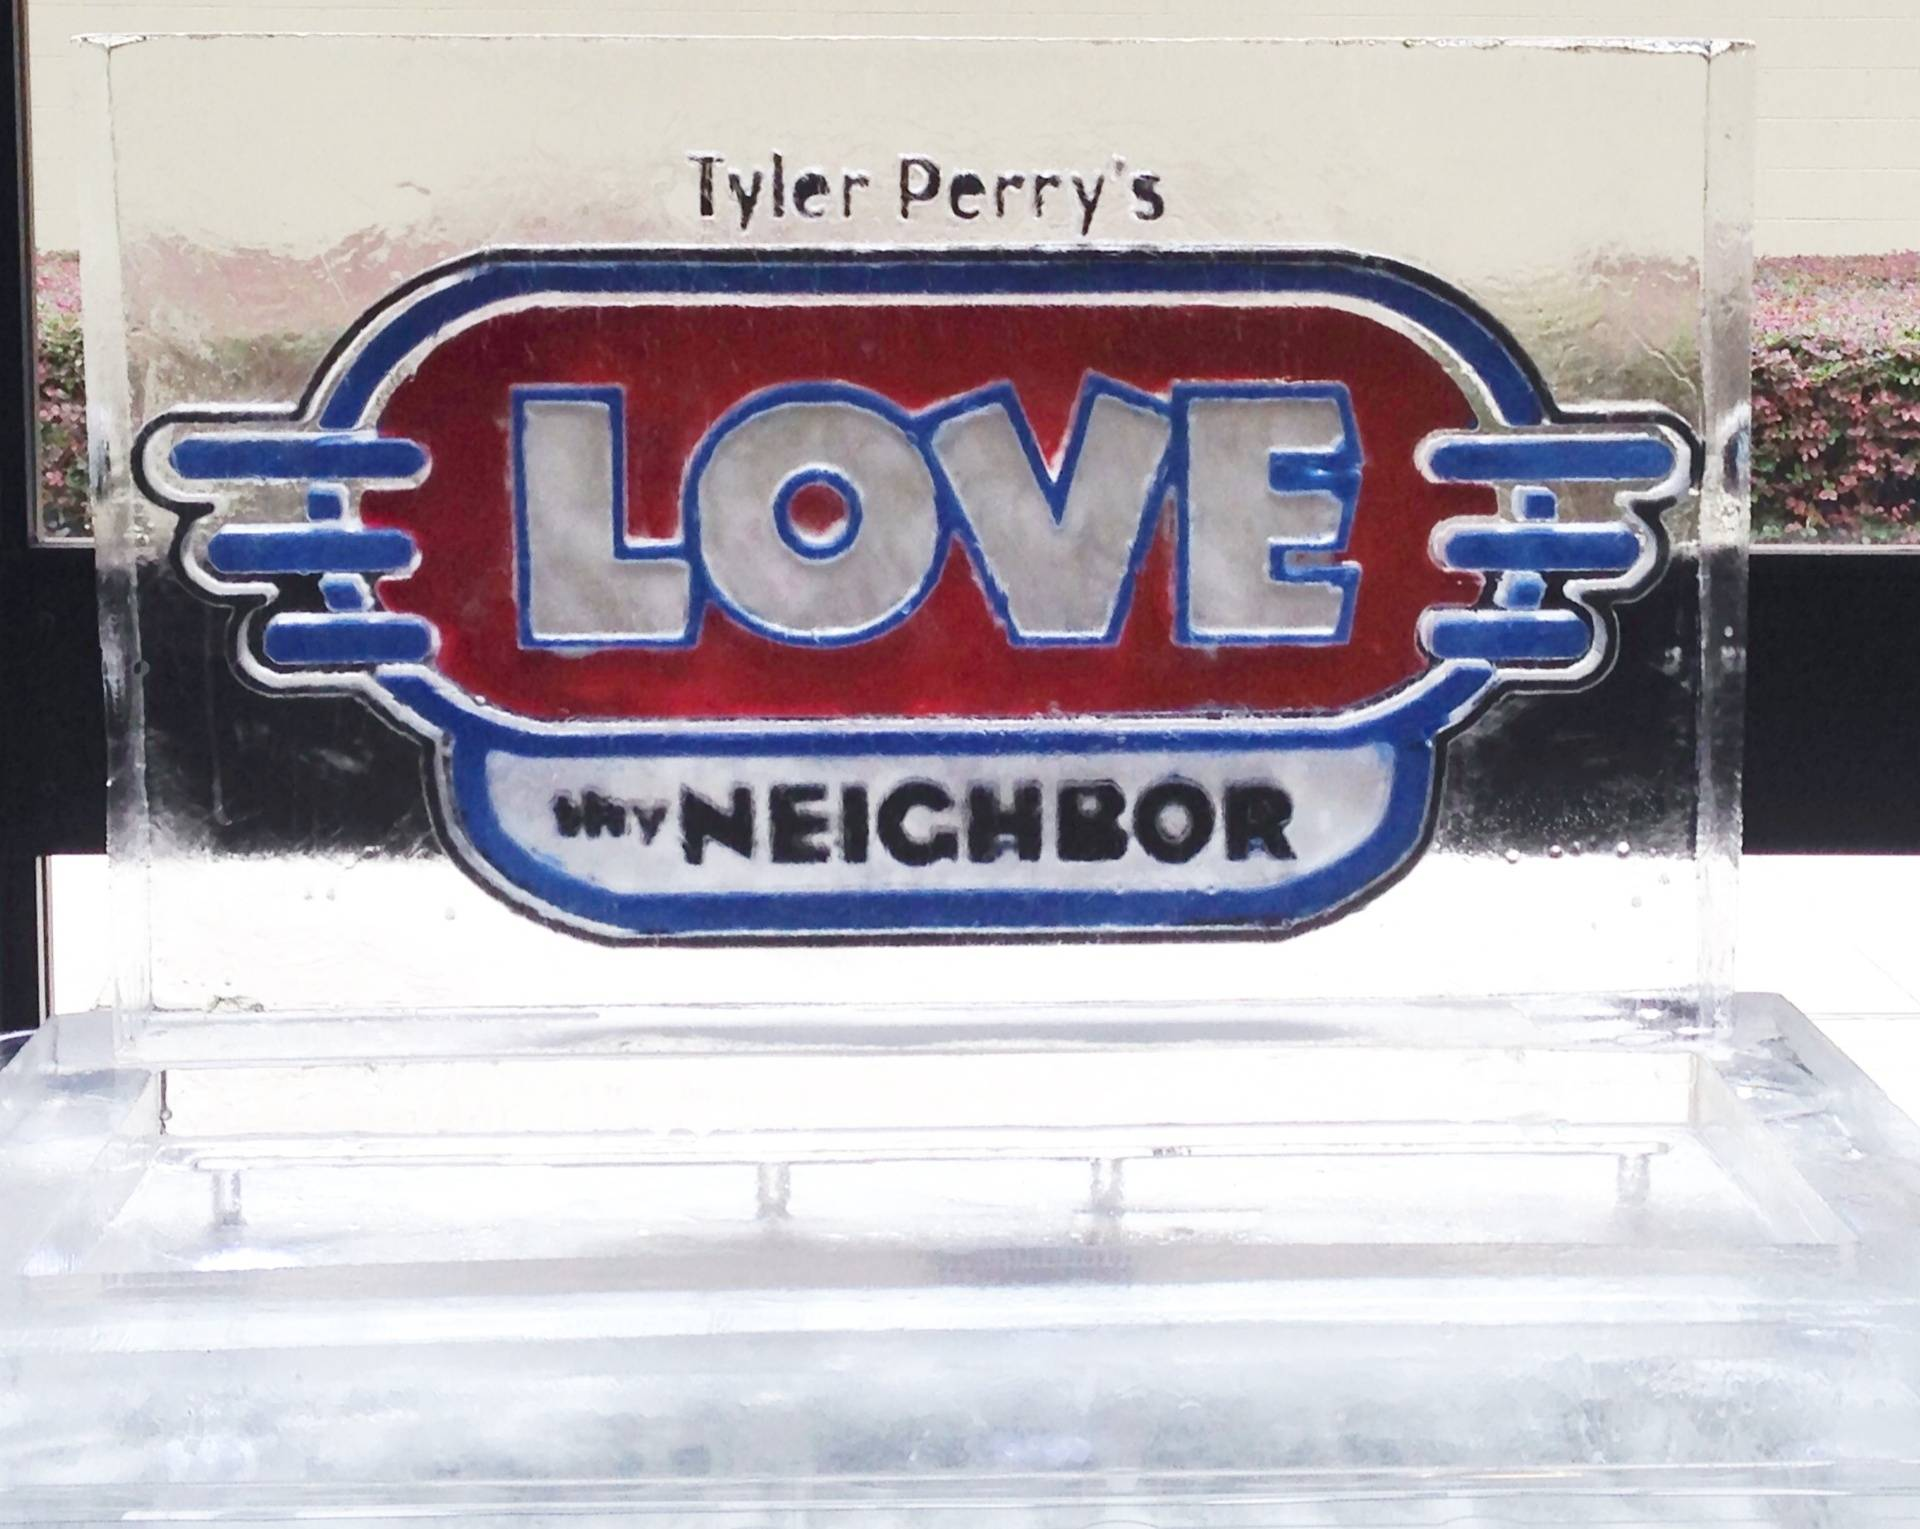 Tyler Perry's Love thy Neighbor